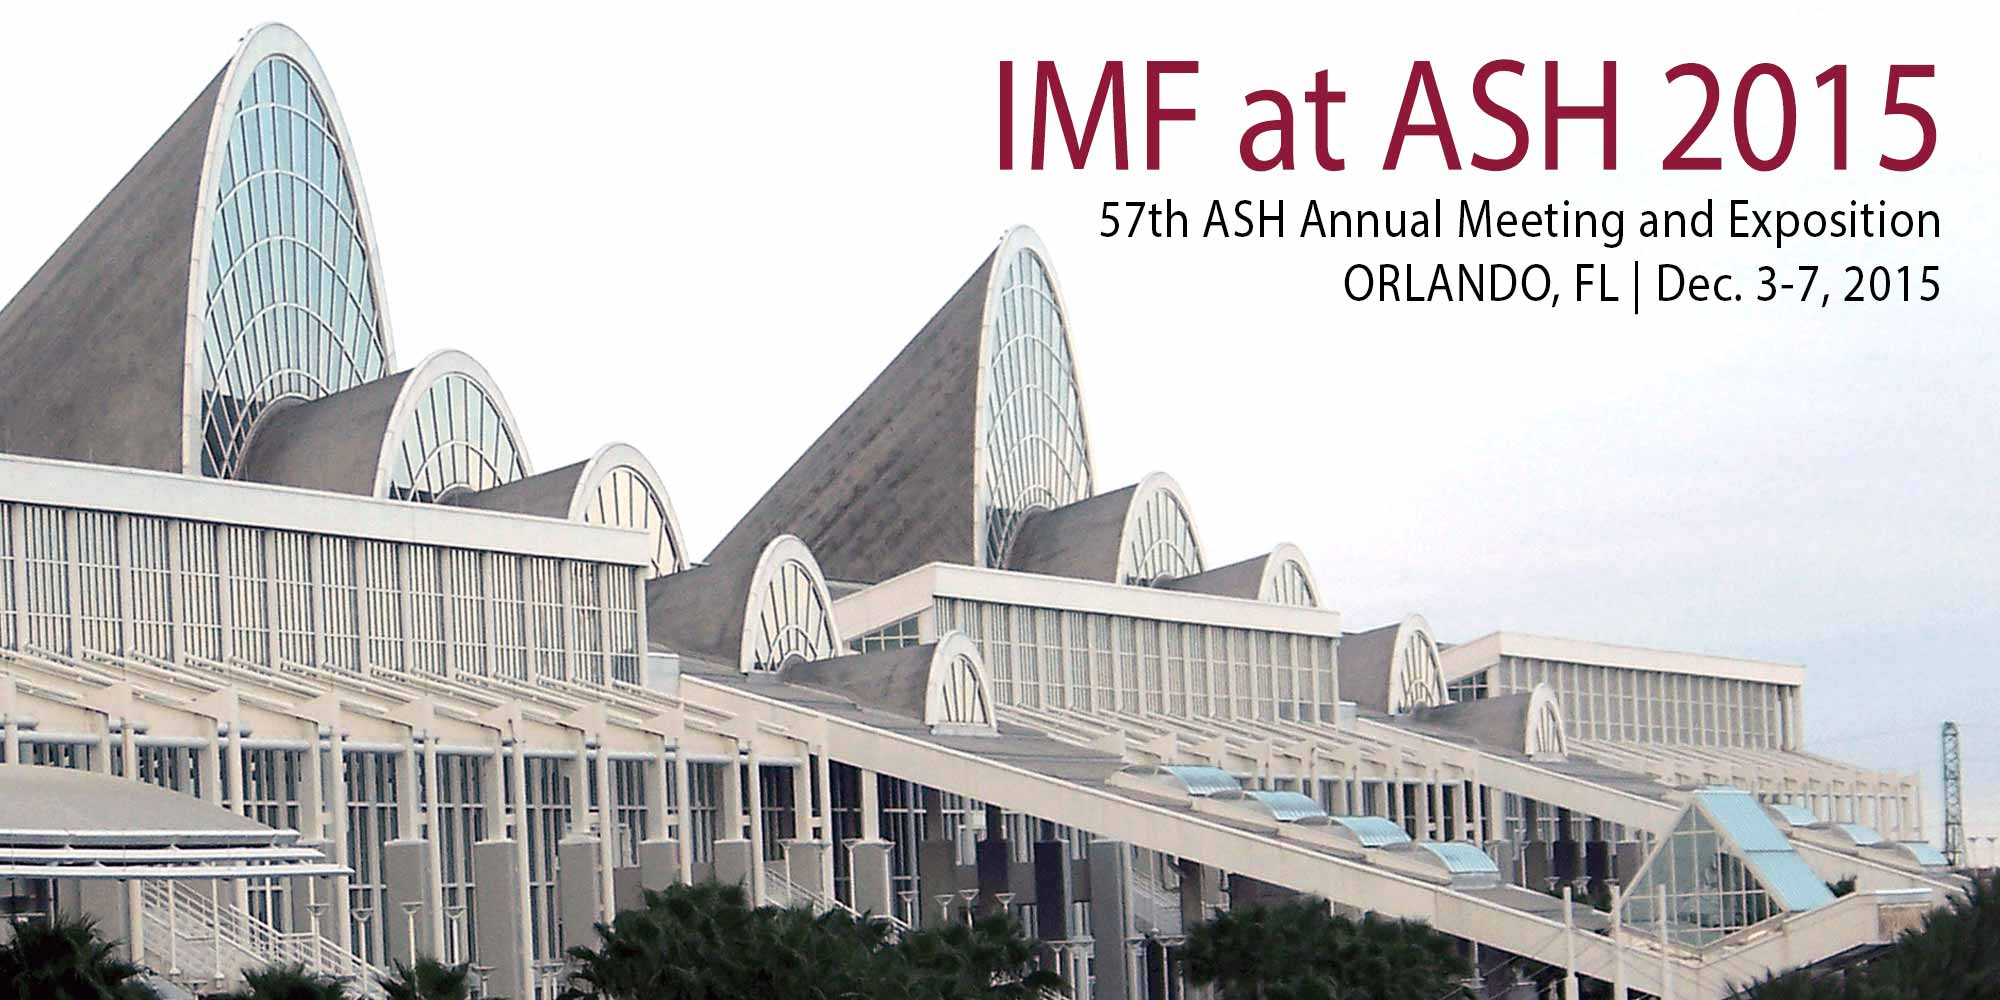 The 2015 American society of Hematology (ASH) meeting in Orlando, Florida